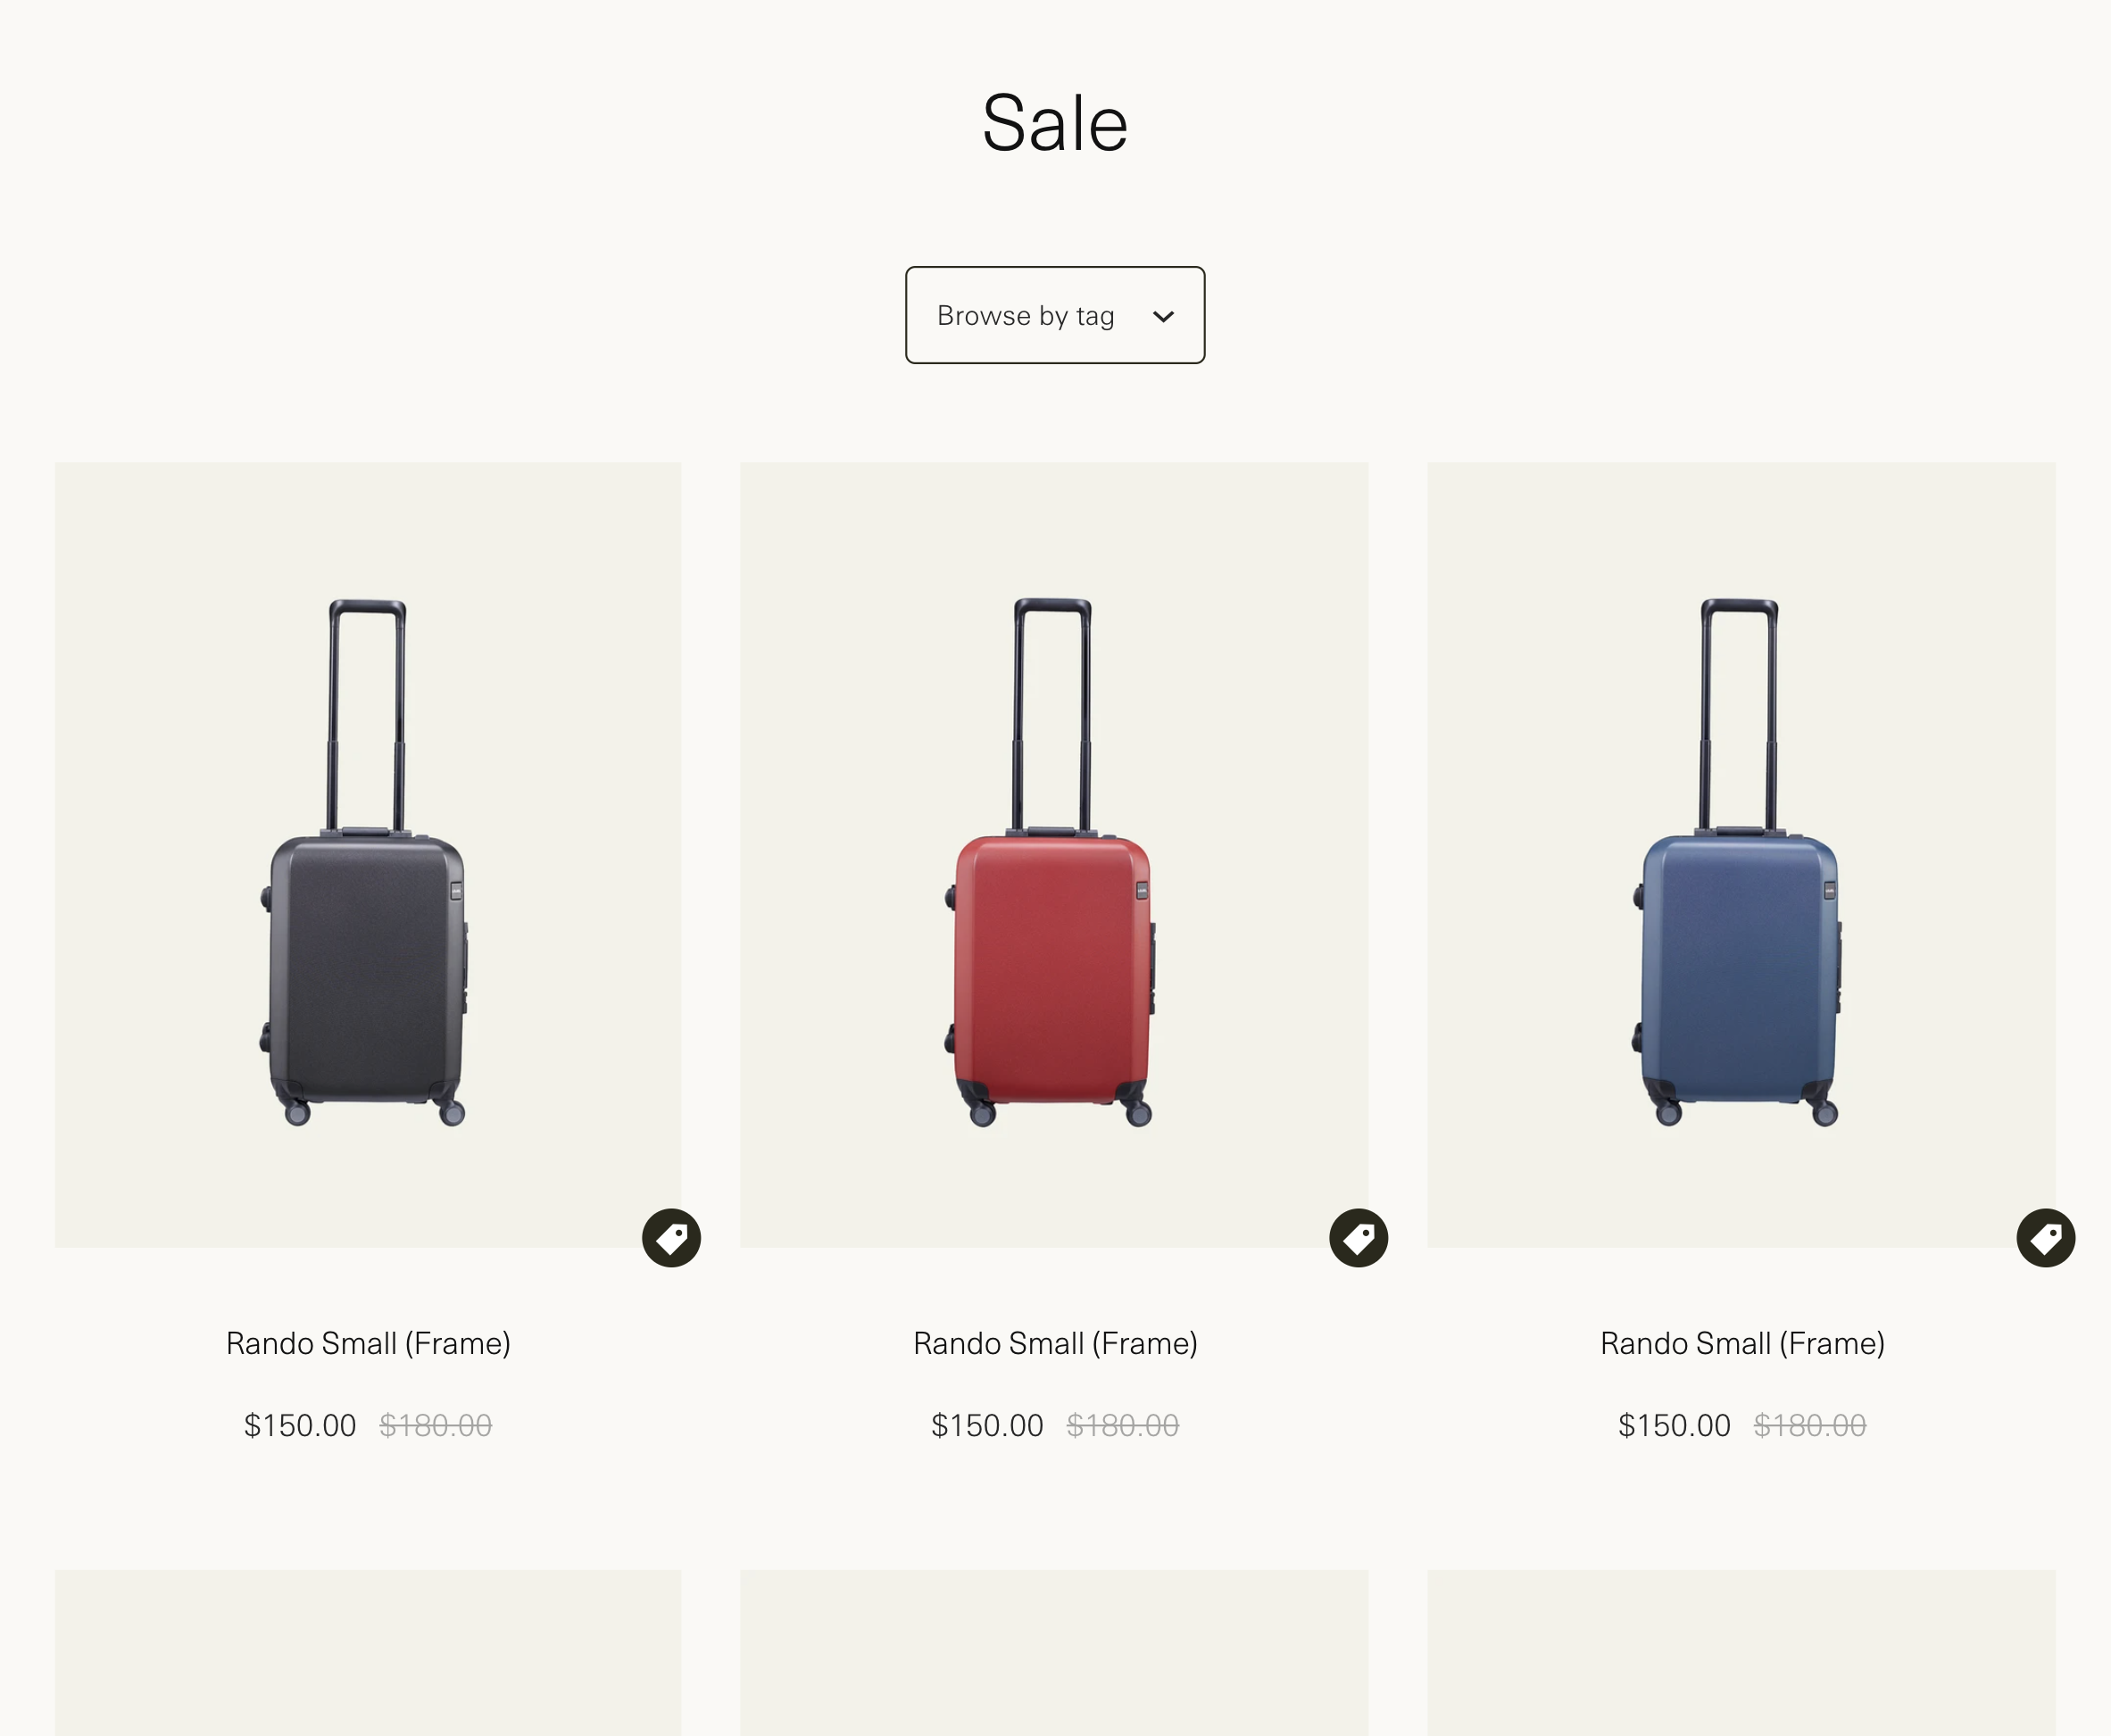 startup_collection_page_with_three_luggage_products.png